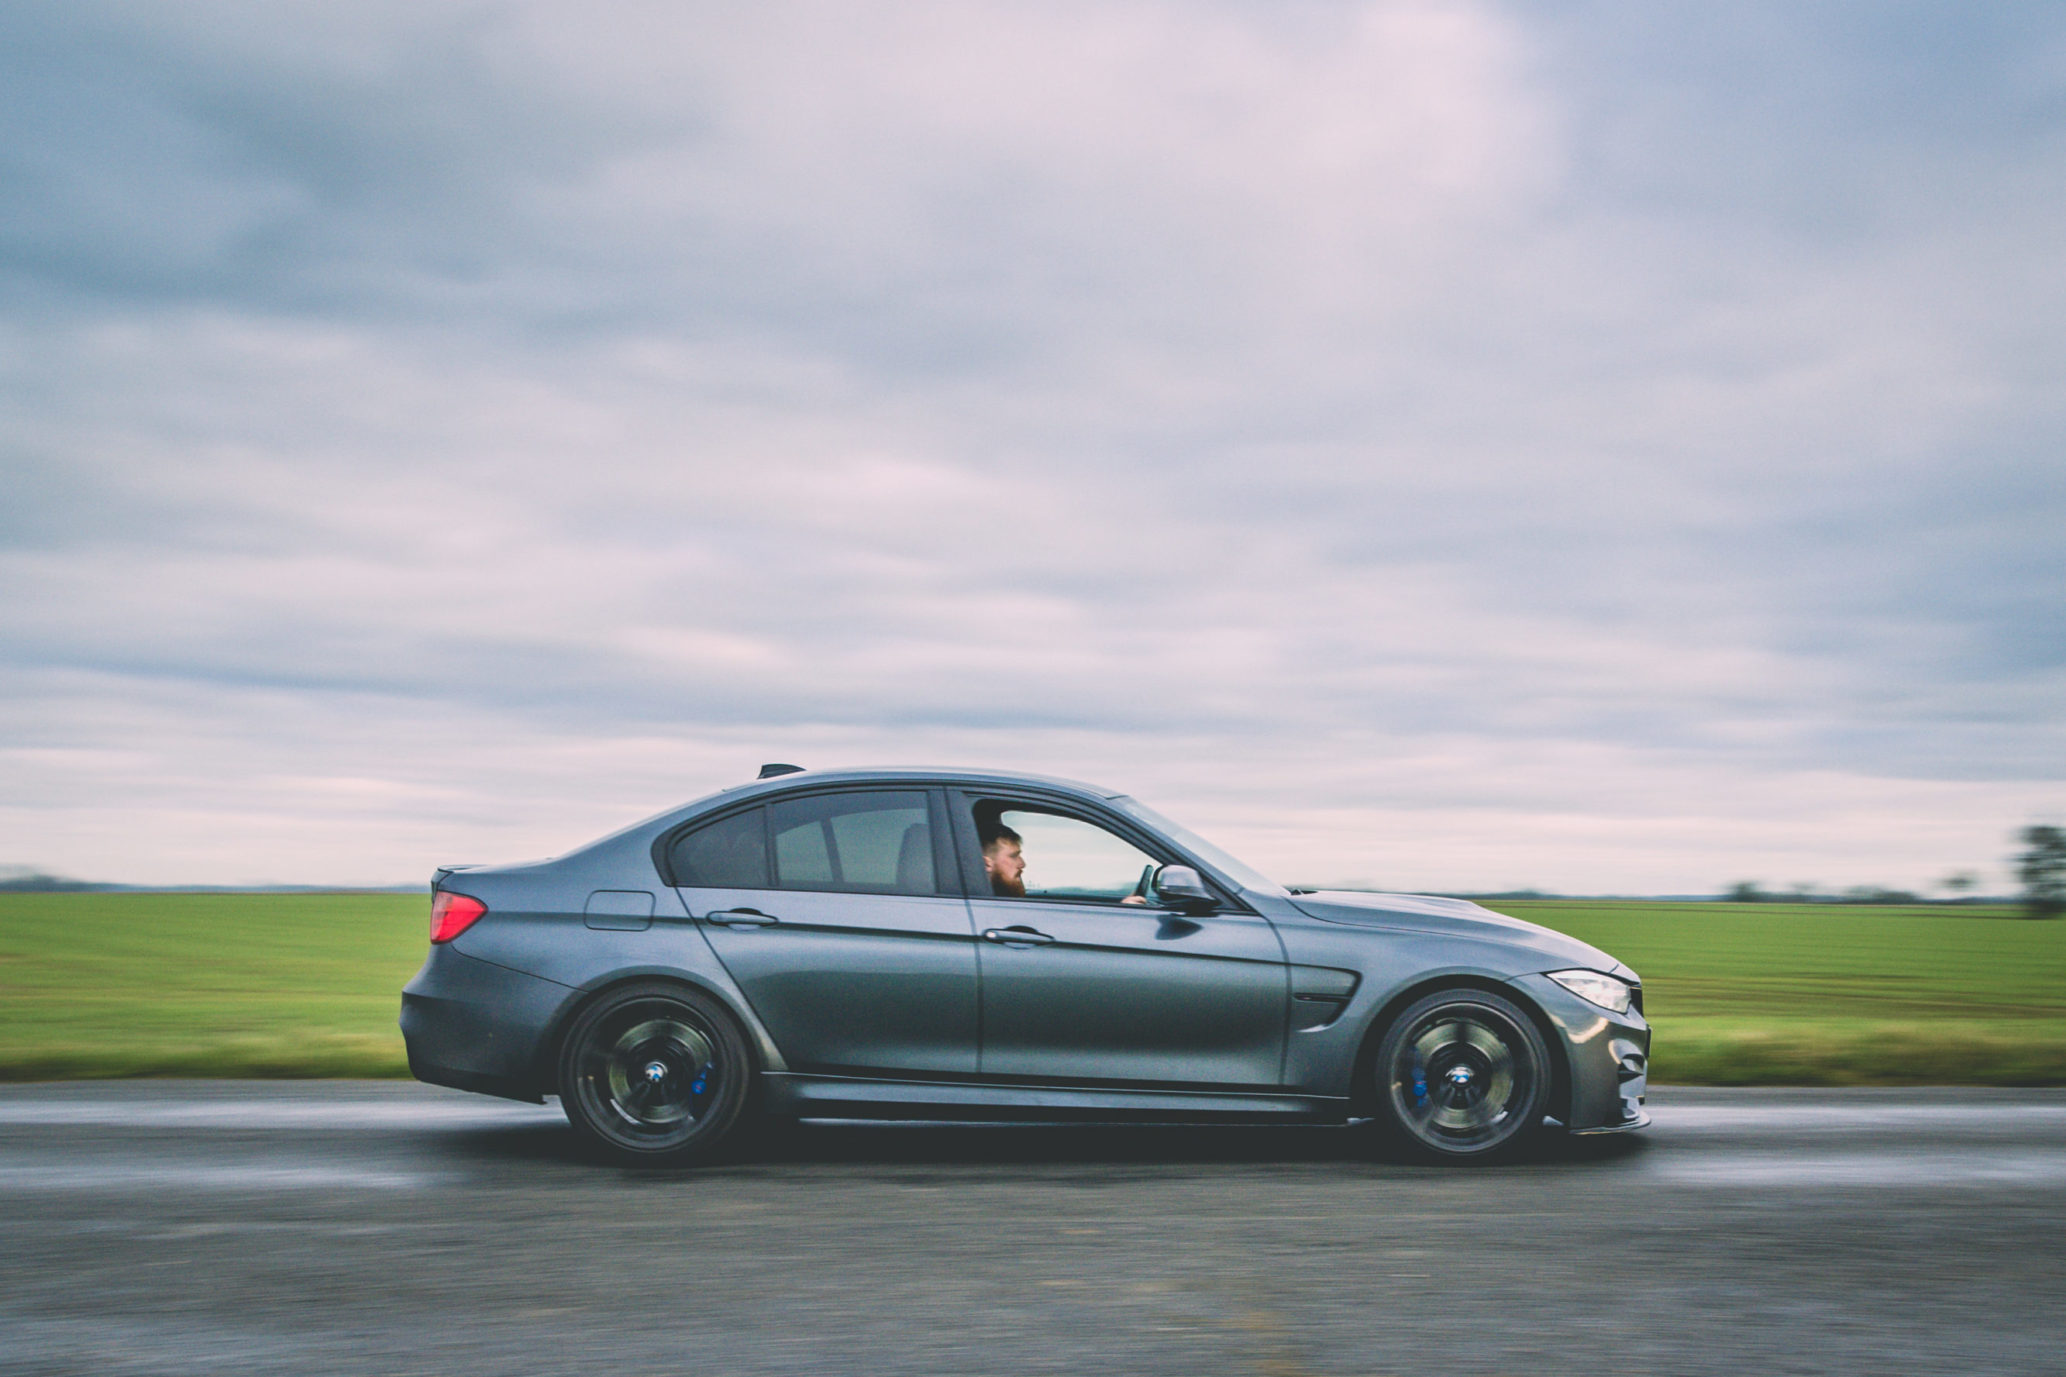 BMW F80 M3 Review